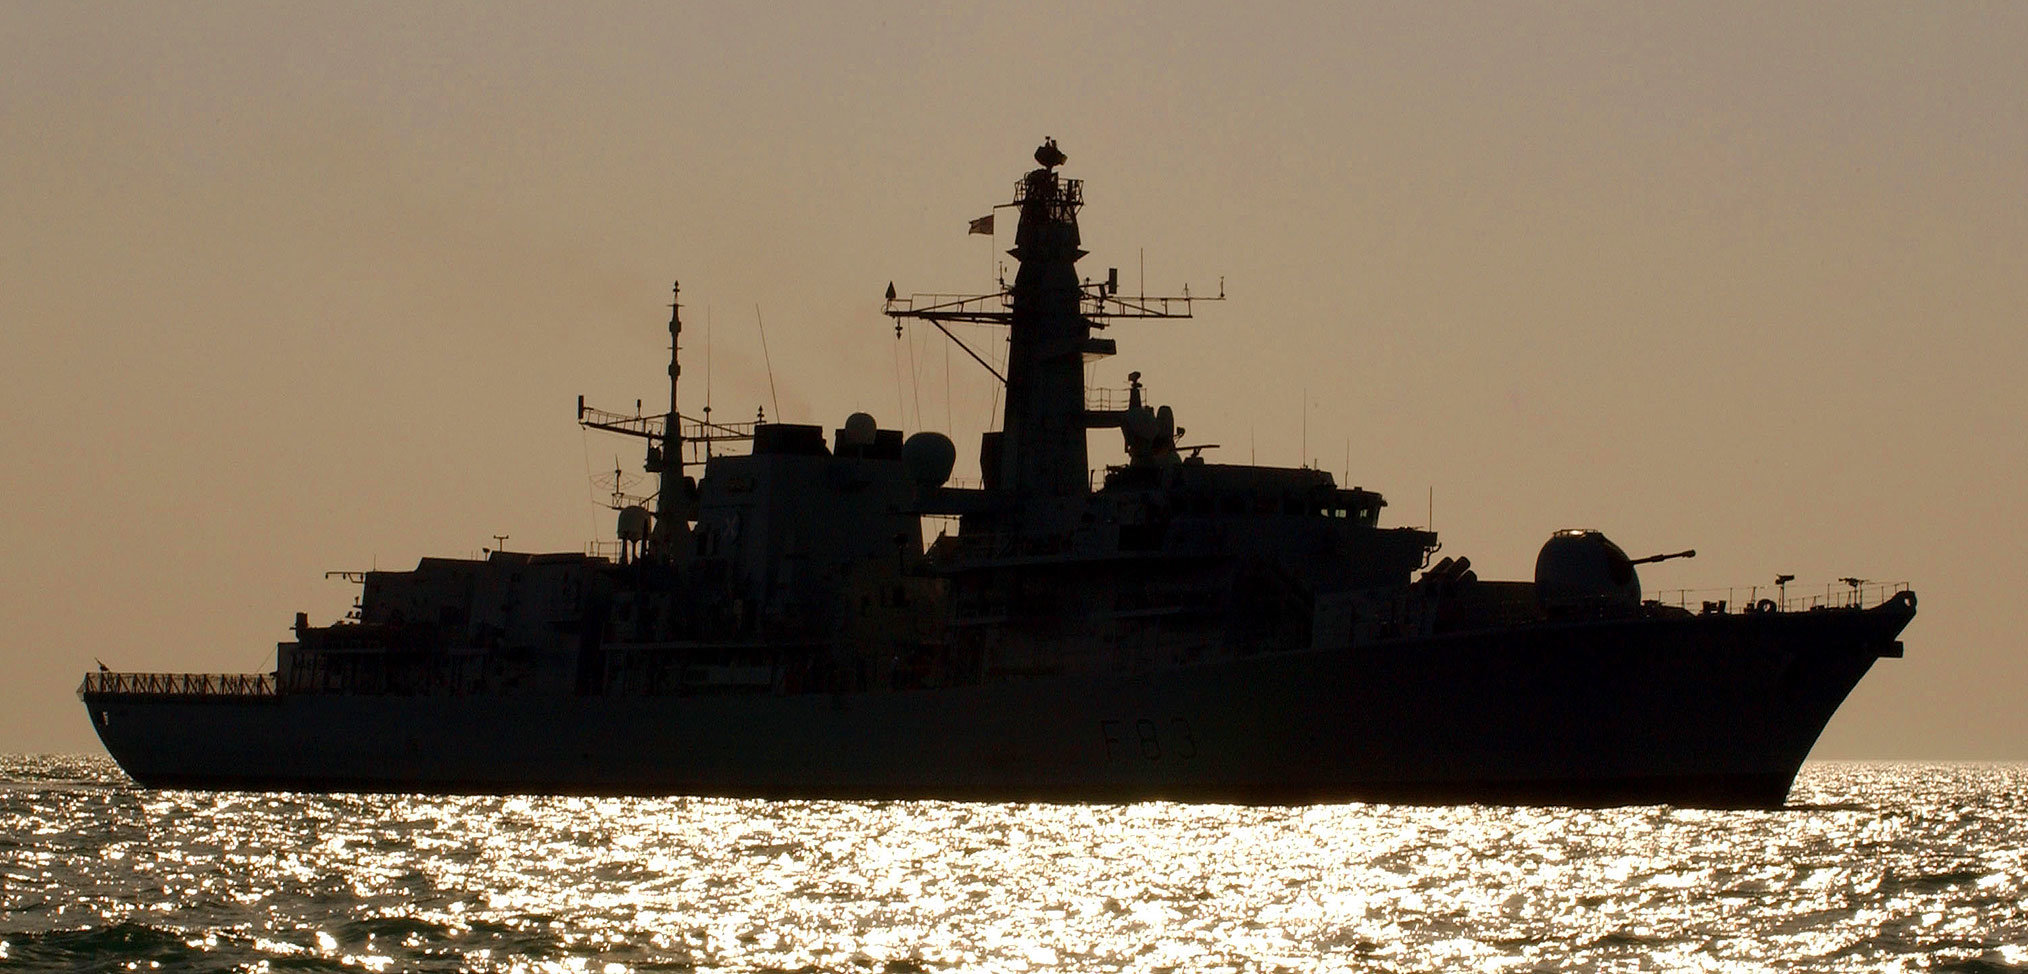 Iran's illegal seizure of a British tanker – a failure by the Royal Navy or a failure of strategy?